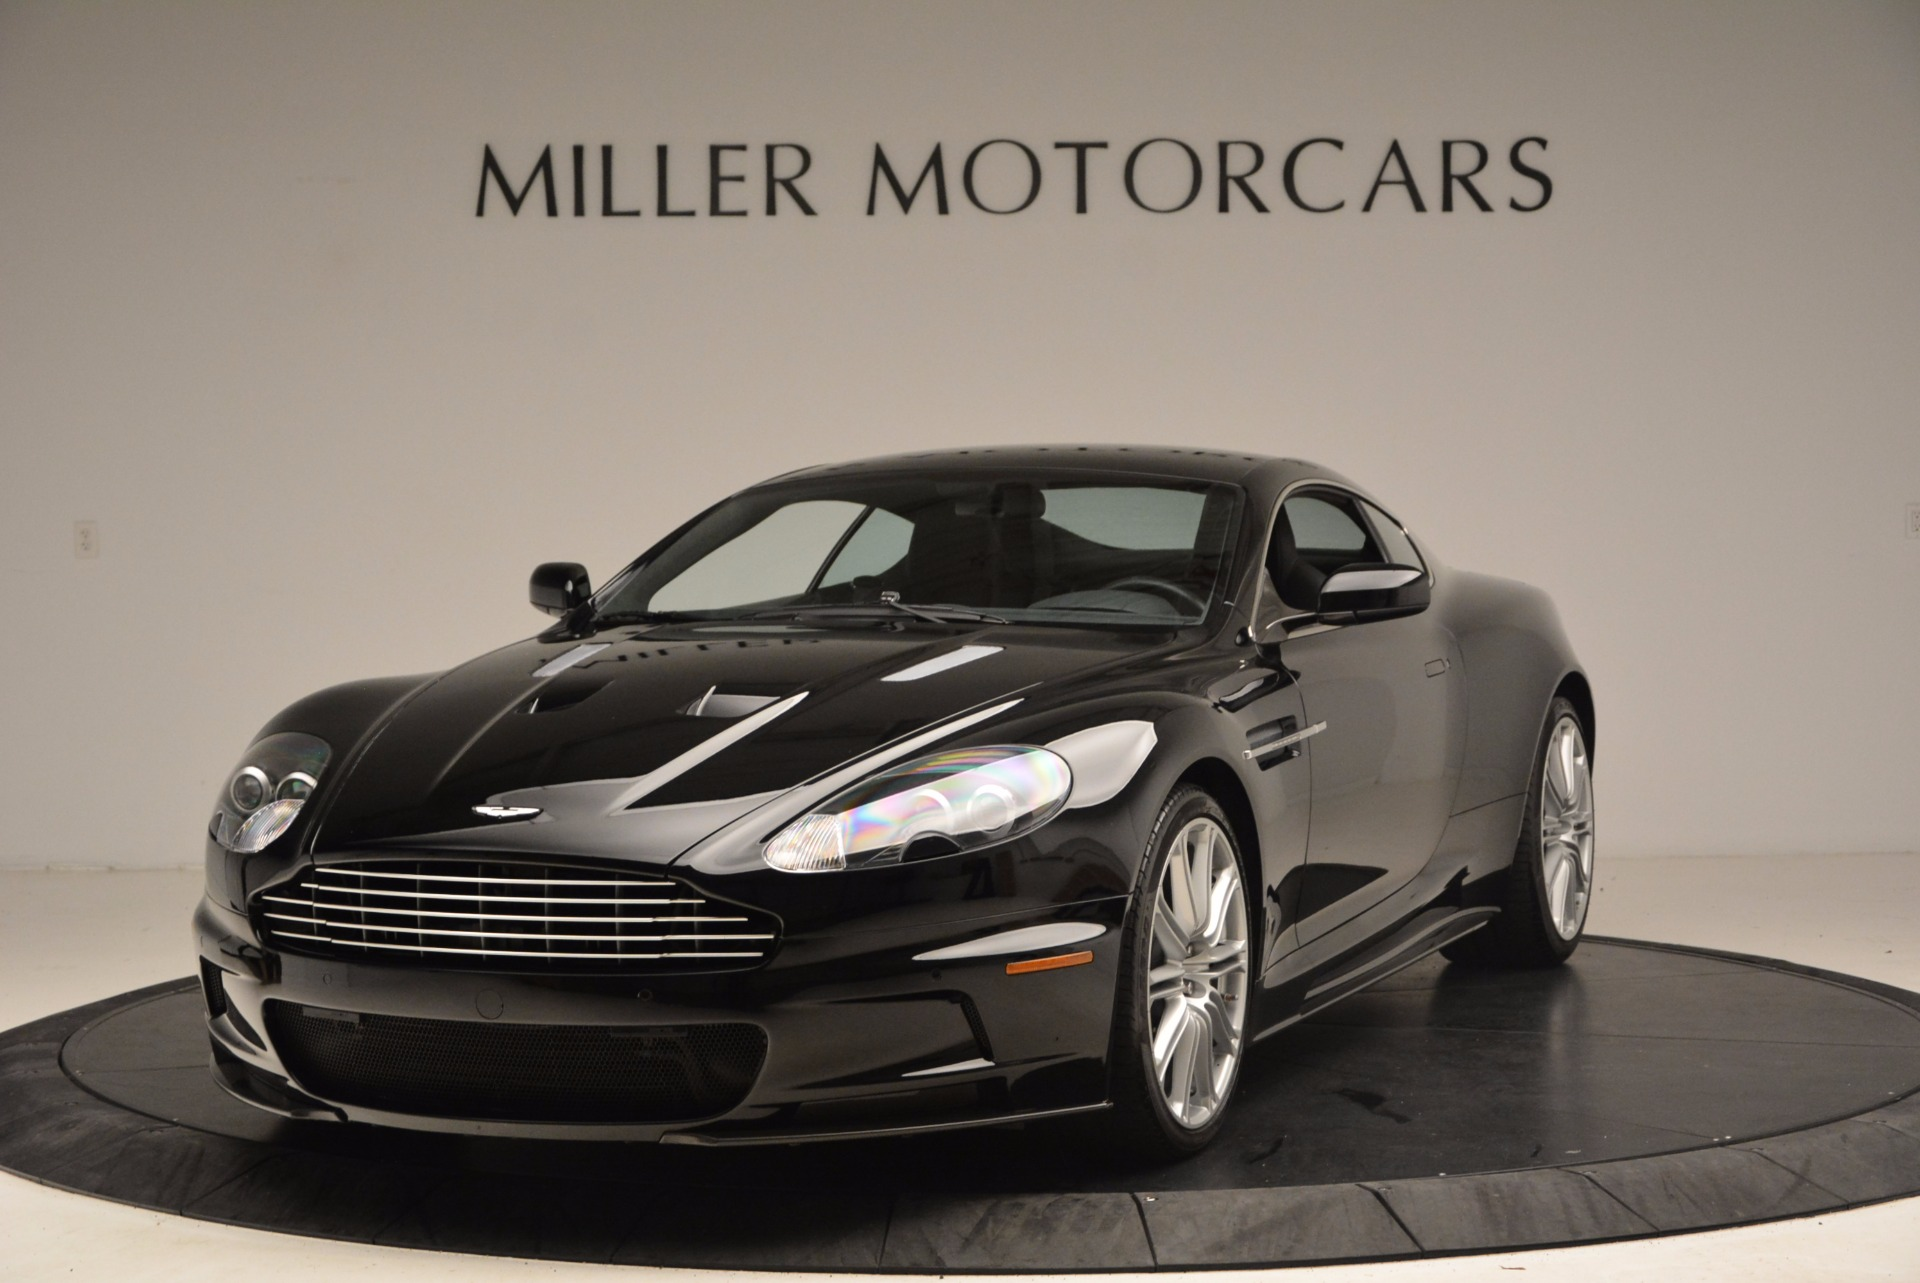 Used 2009 Aston Martin DBS for sale Sold at Bentley Greenwich in Greenwich CT 06830 1